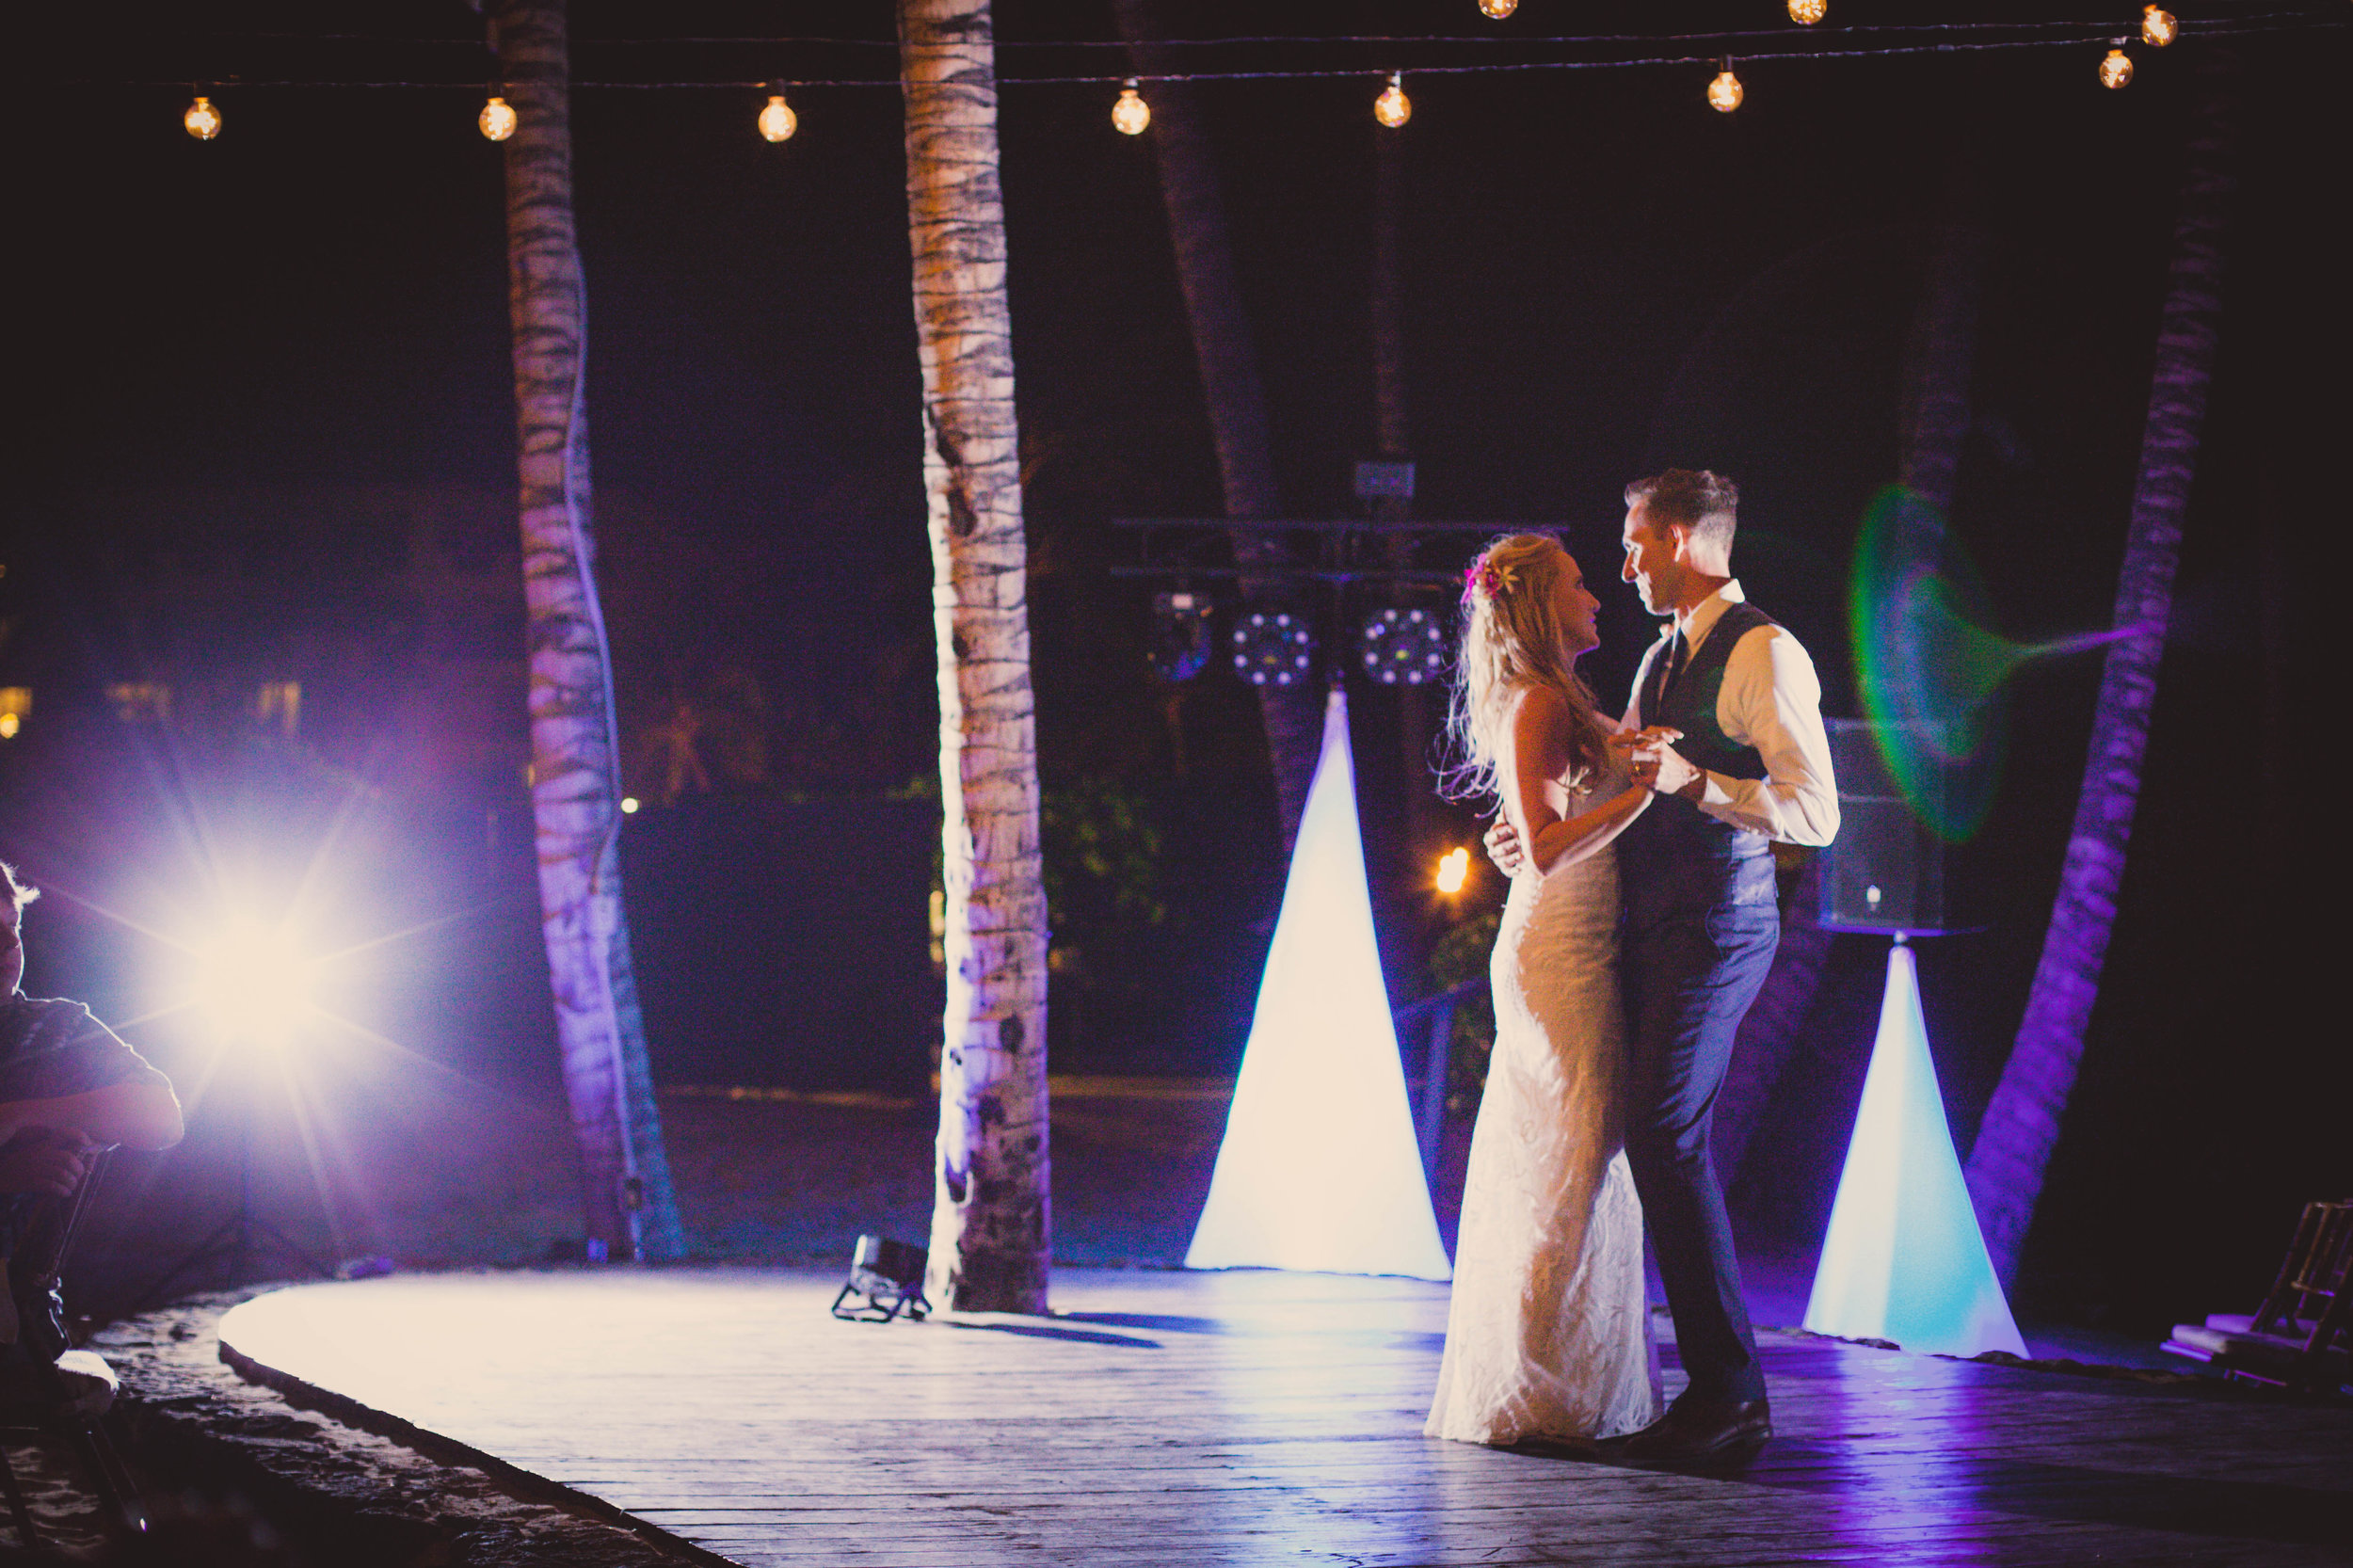 big island hawaii fairmont orchid beach wedding © kelilina photography 20170812210108-1.jpg